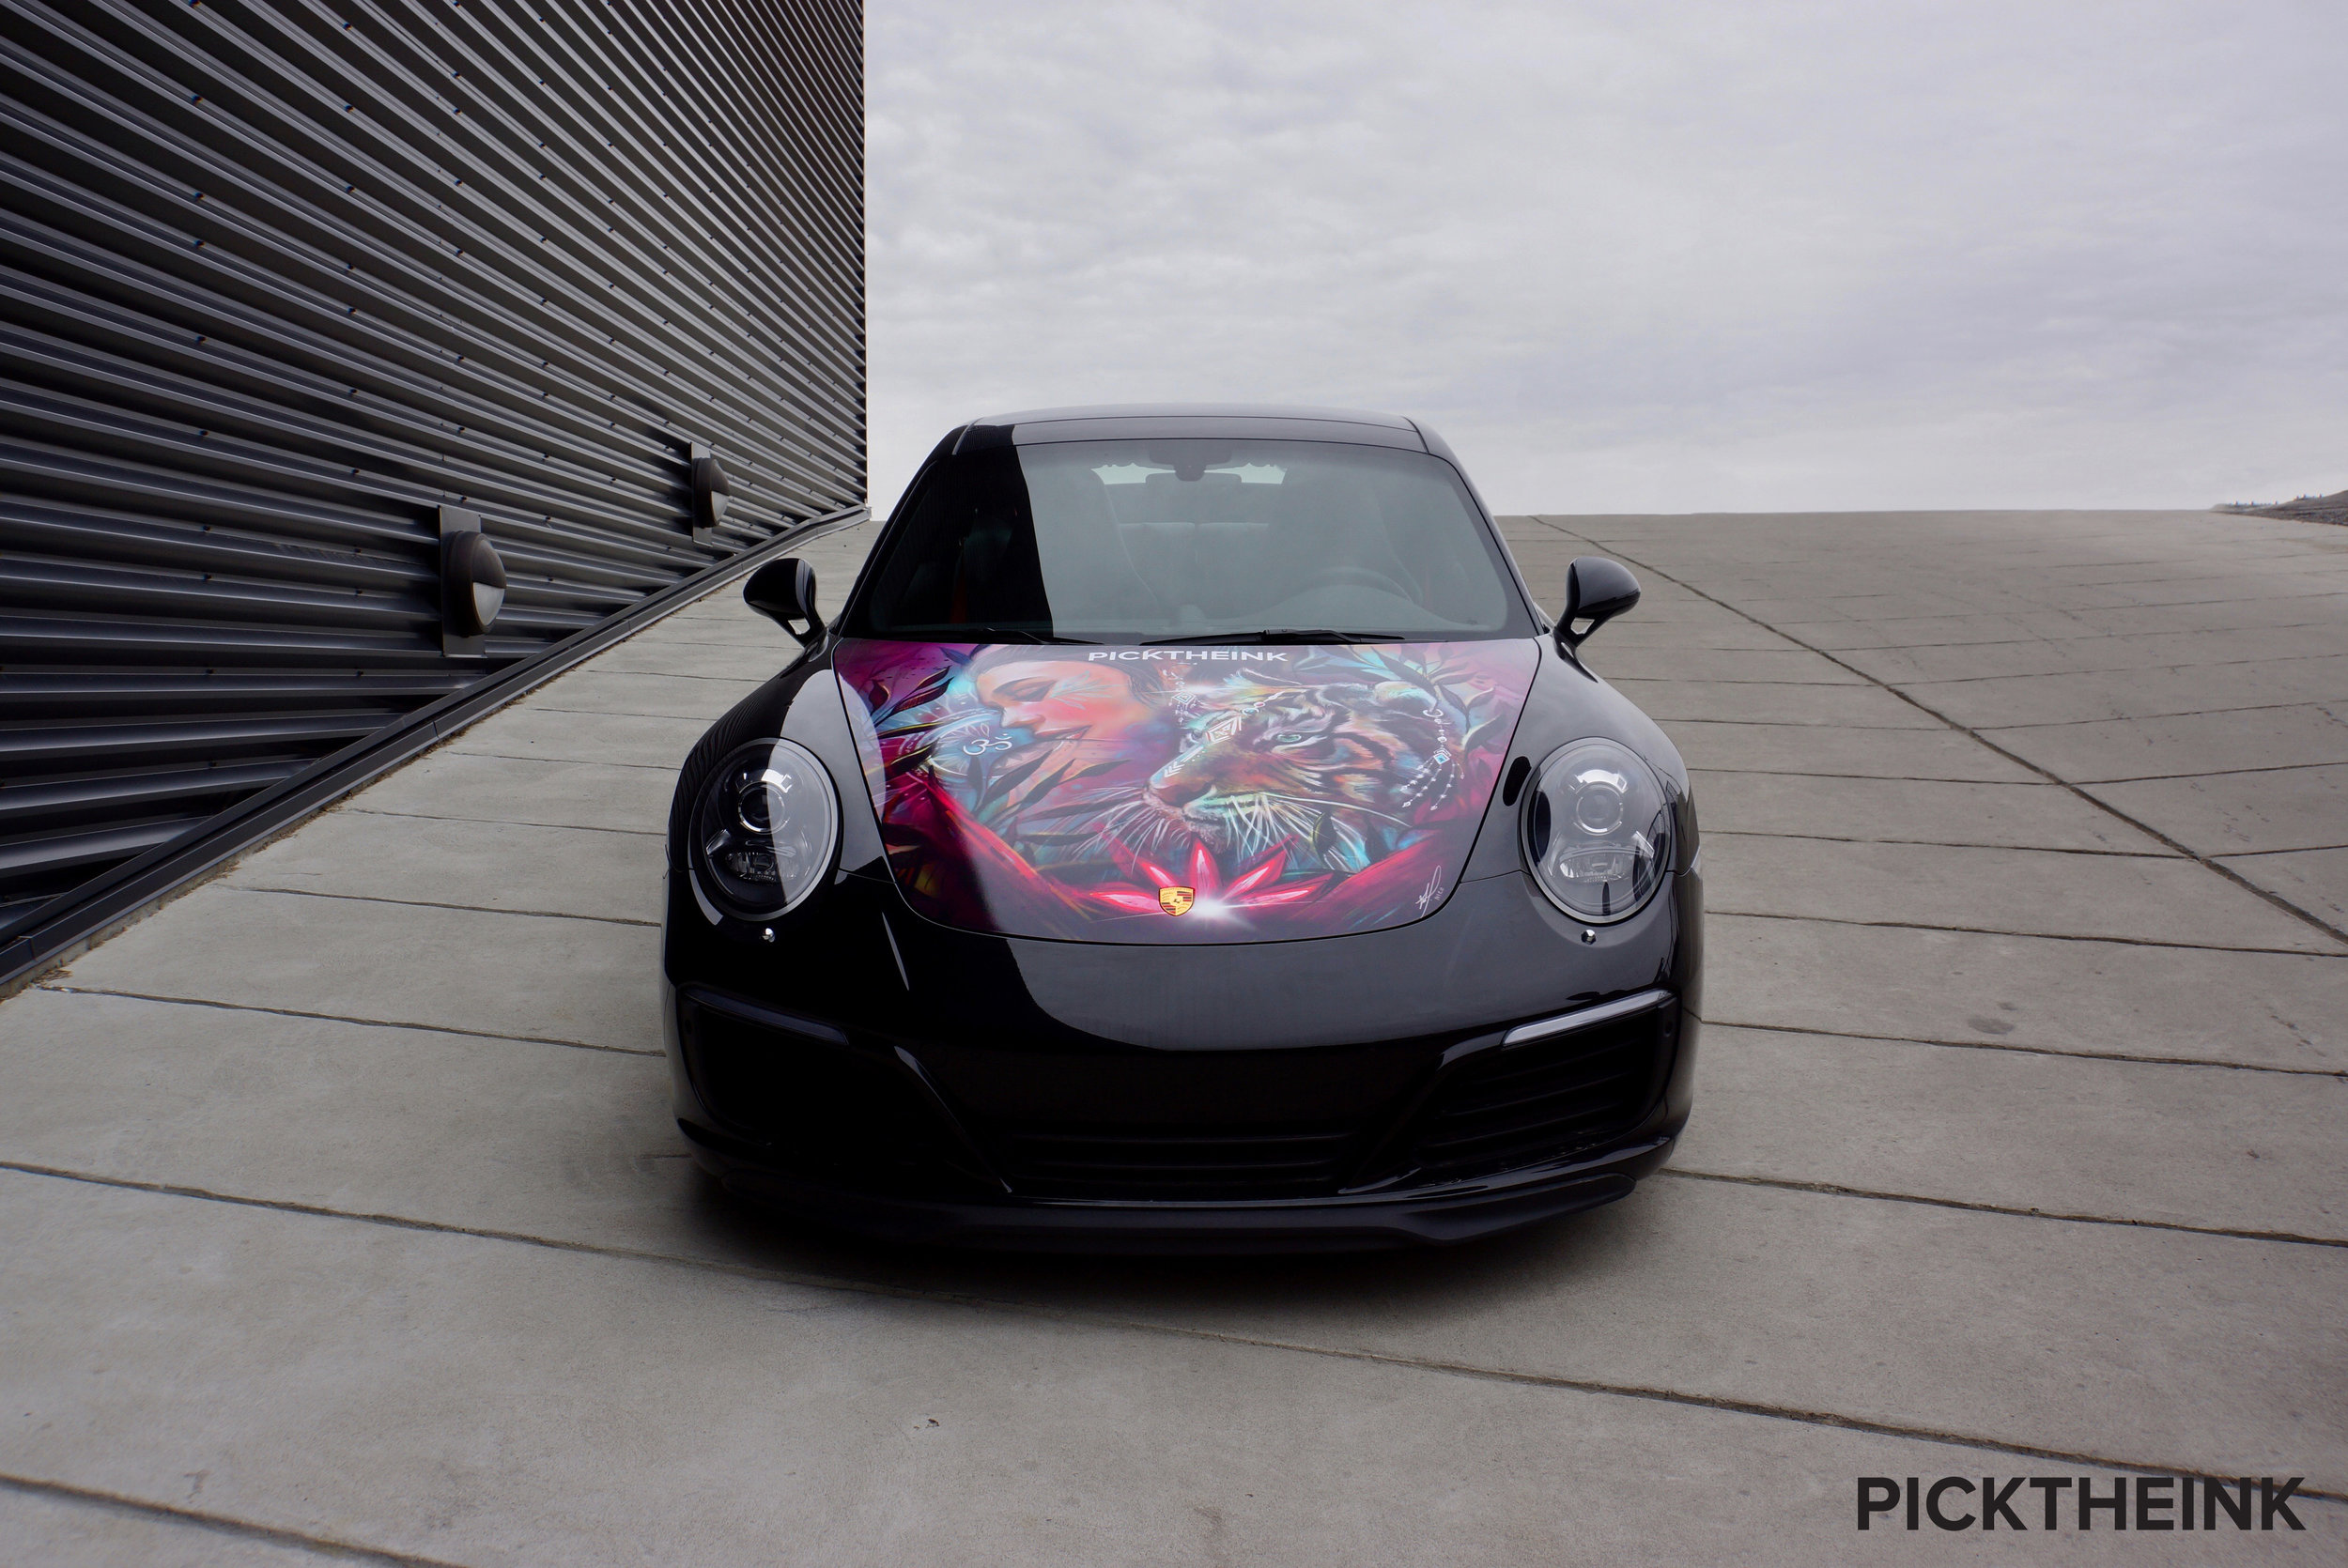 The black Porsche 911 designed by  Nico Canon